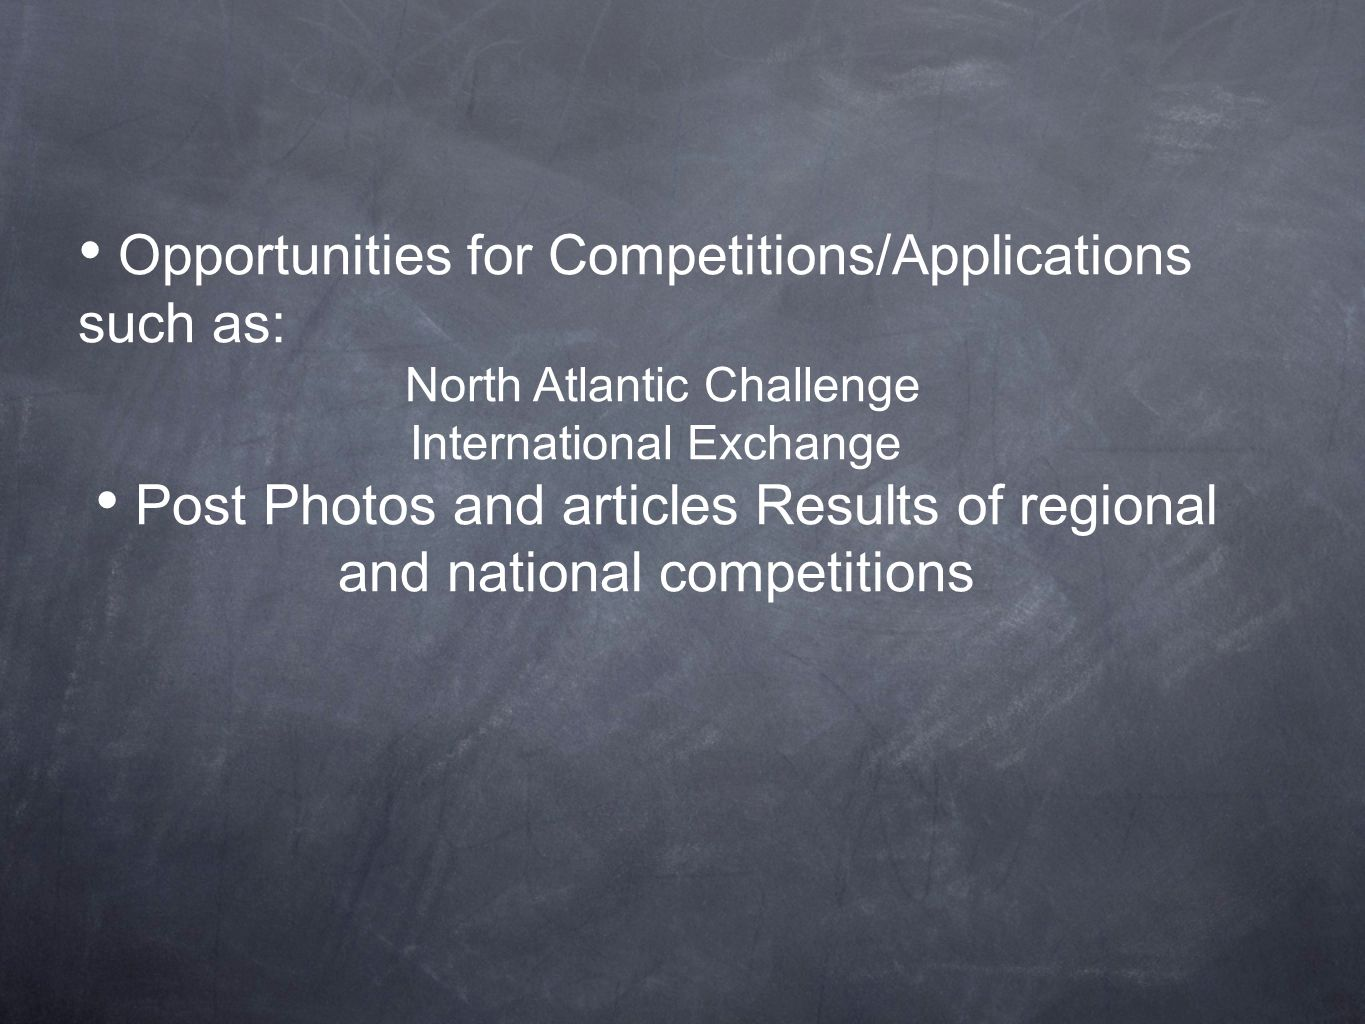 Opportunities for Competitions/Applications such as: North Atlantic Challenge International Exchange Post Photos and articles Results of regional and national competitions